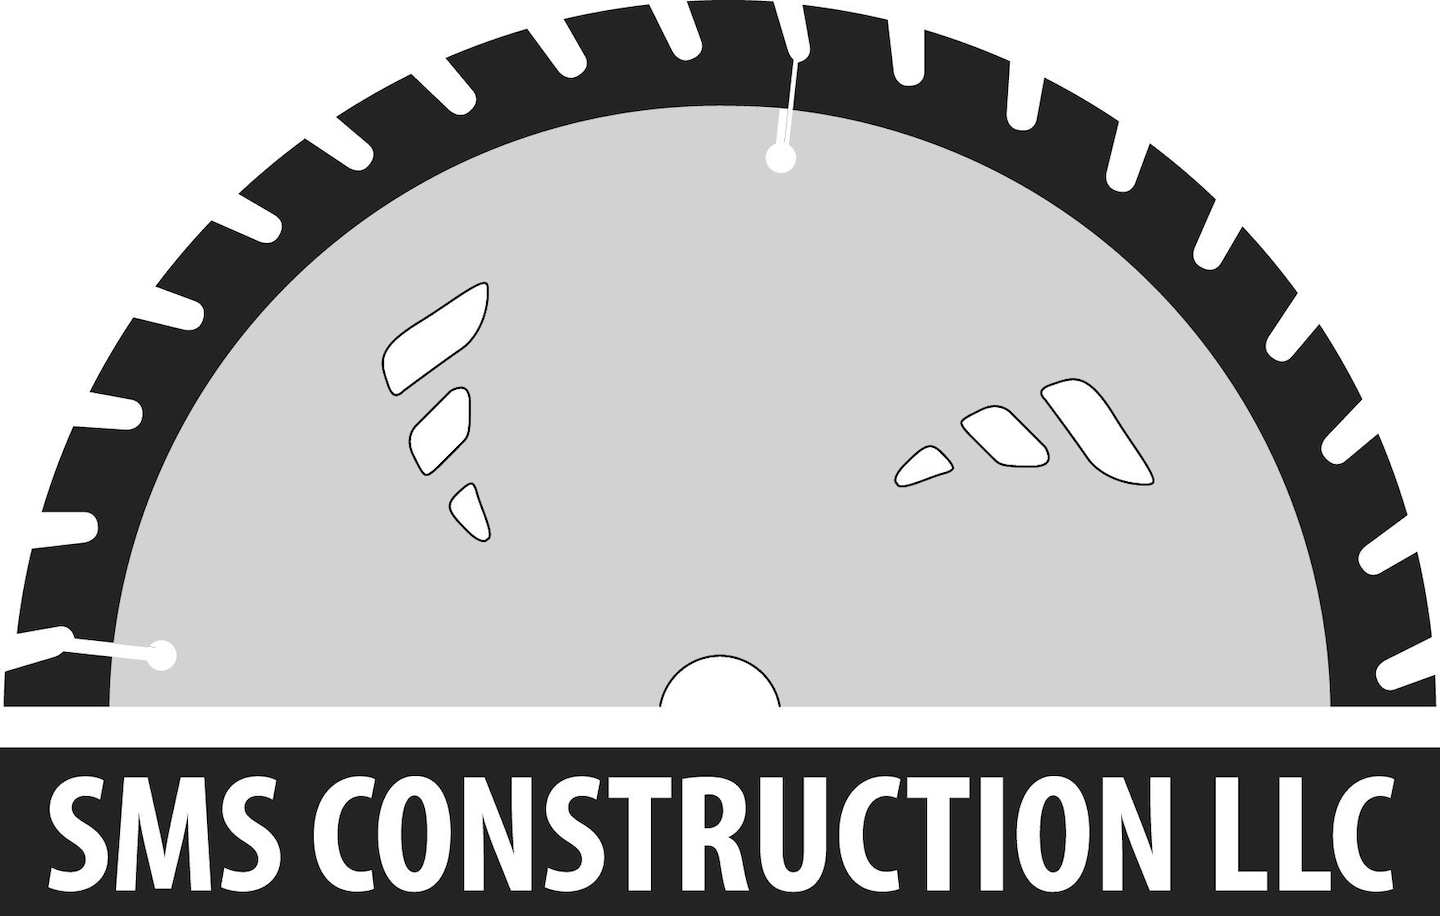 SMS Construction LLC